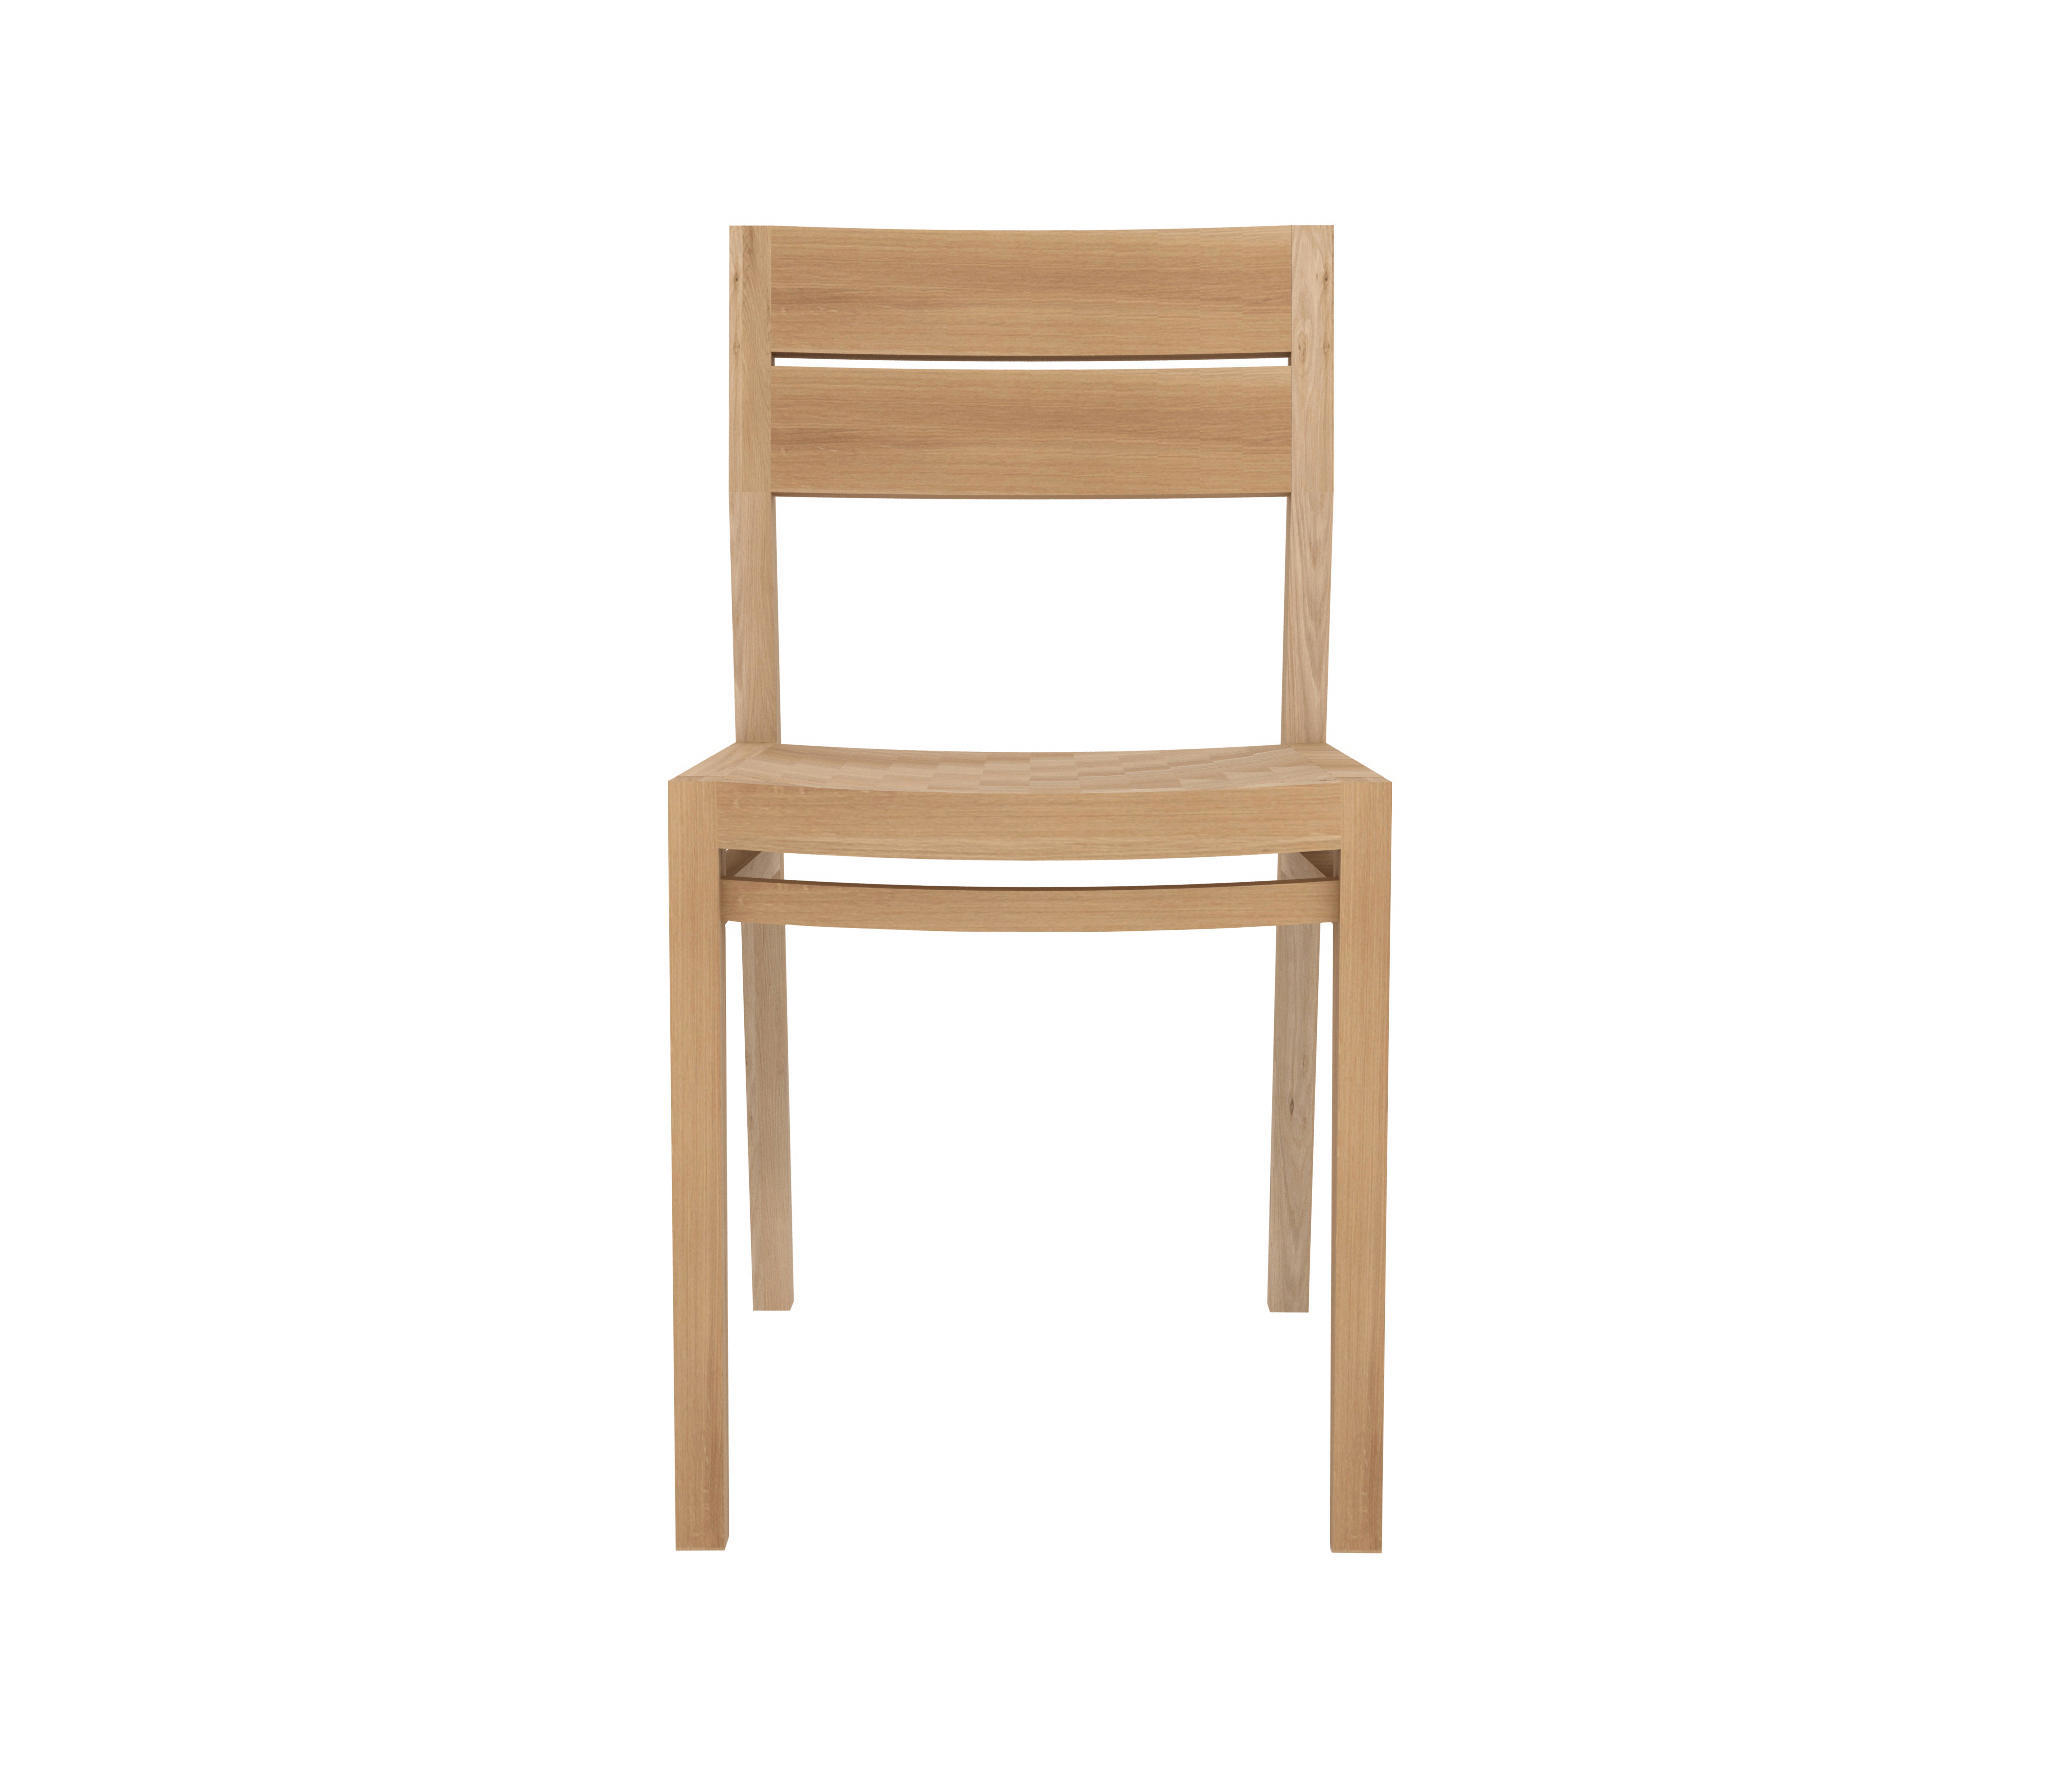 OAK EX 1 CHAIR Restaurant chairs from Ethnicraft